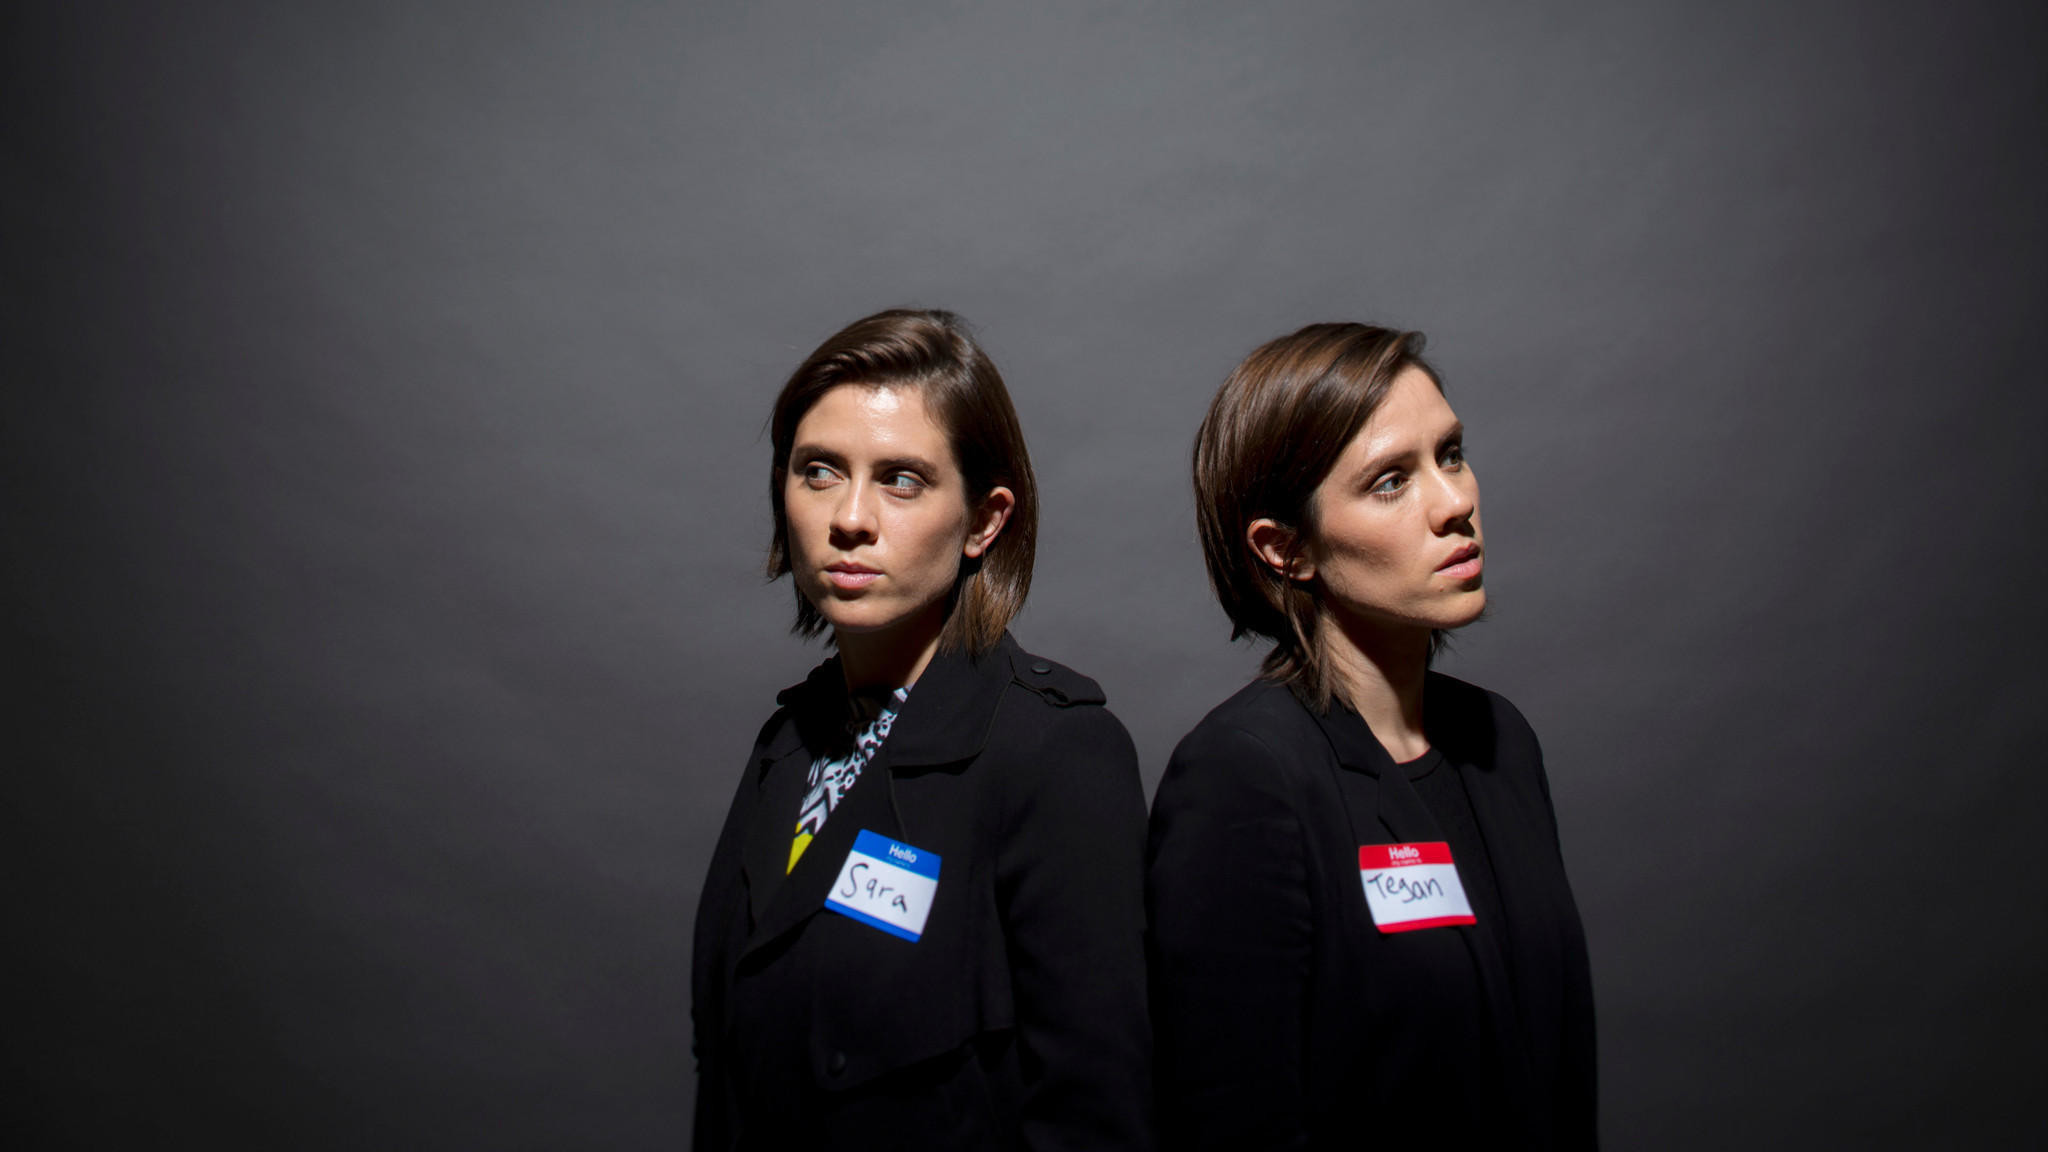 2048x1152 Why Tegan and Sara broke free of the 'stifling' indie scene and found  freedom in pop - LA Times